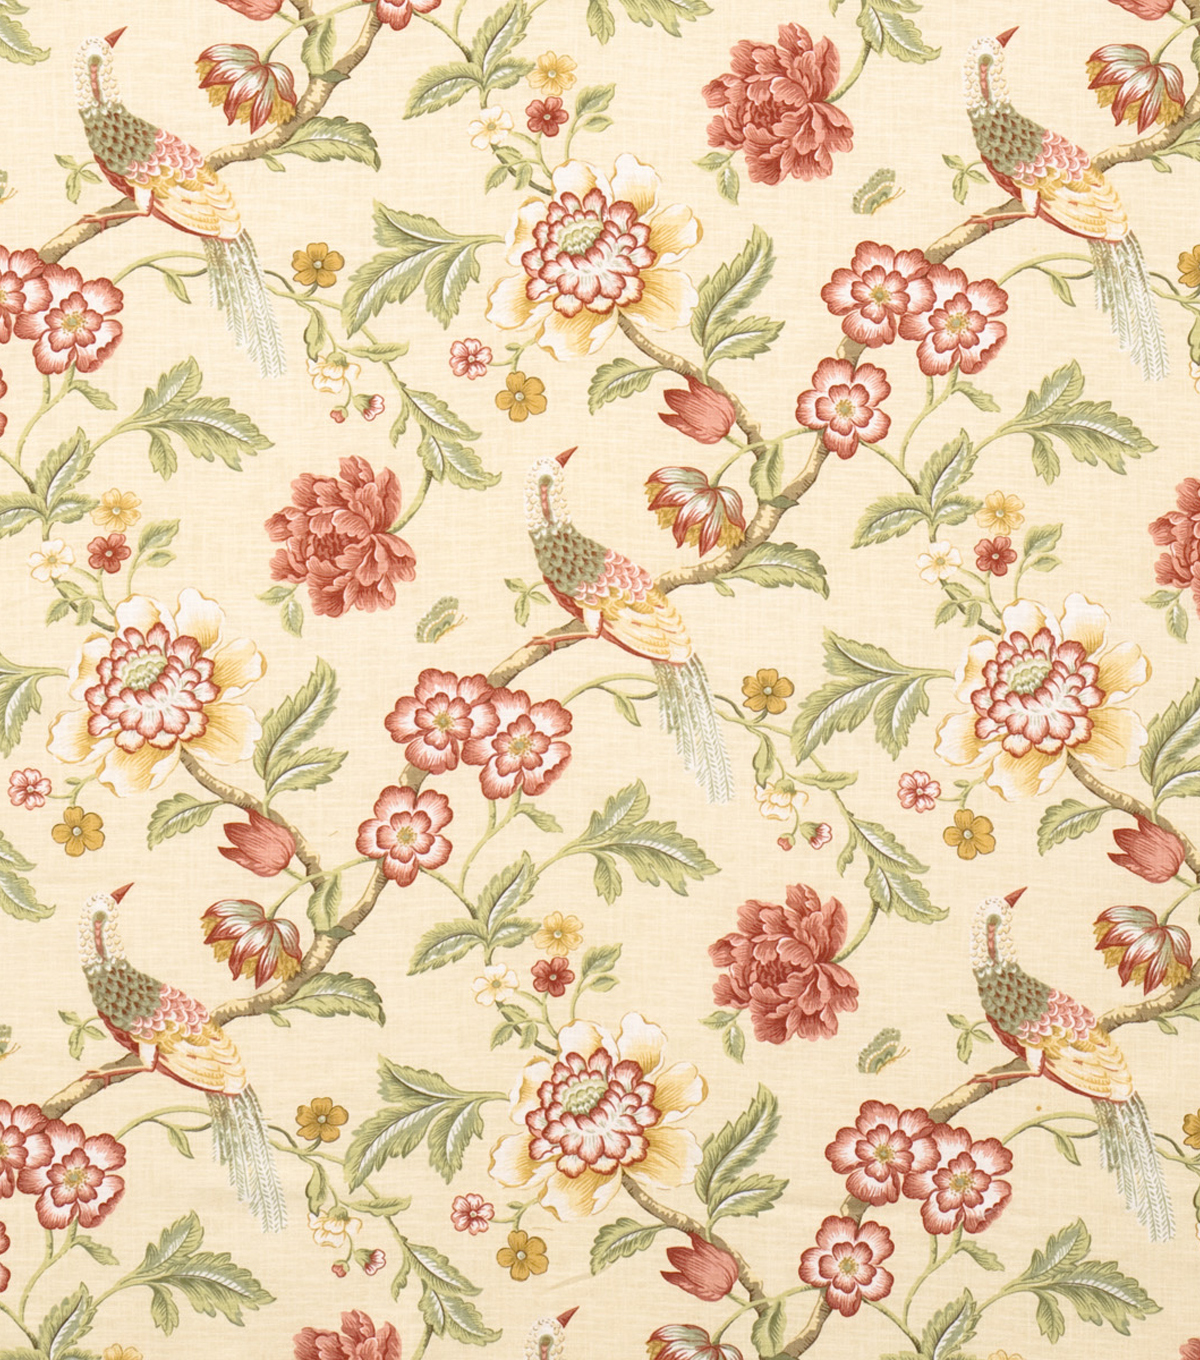 Home Decor 8\u0022x8\u0022 Fabric Swatch-Jaclyn Smith France-Oliveberry